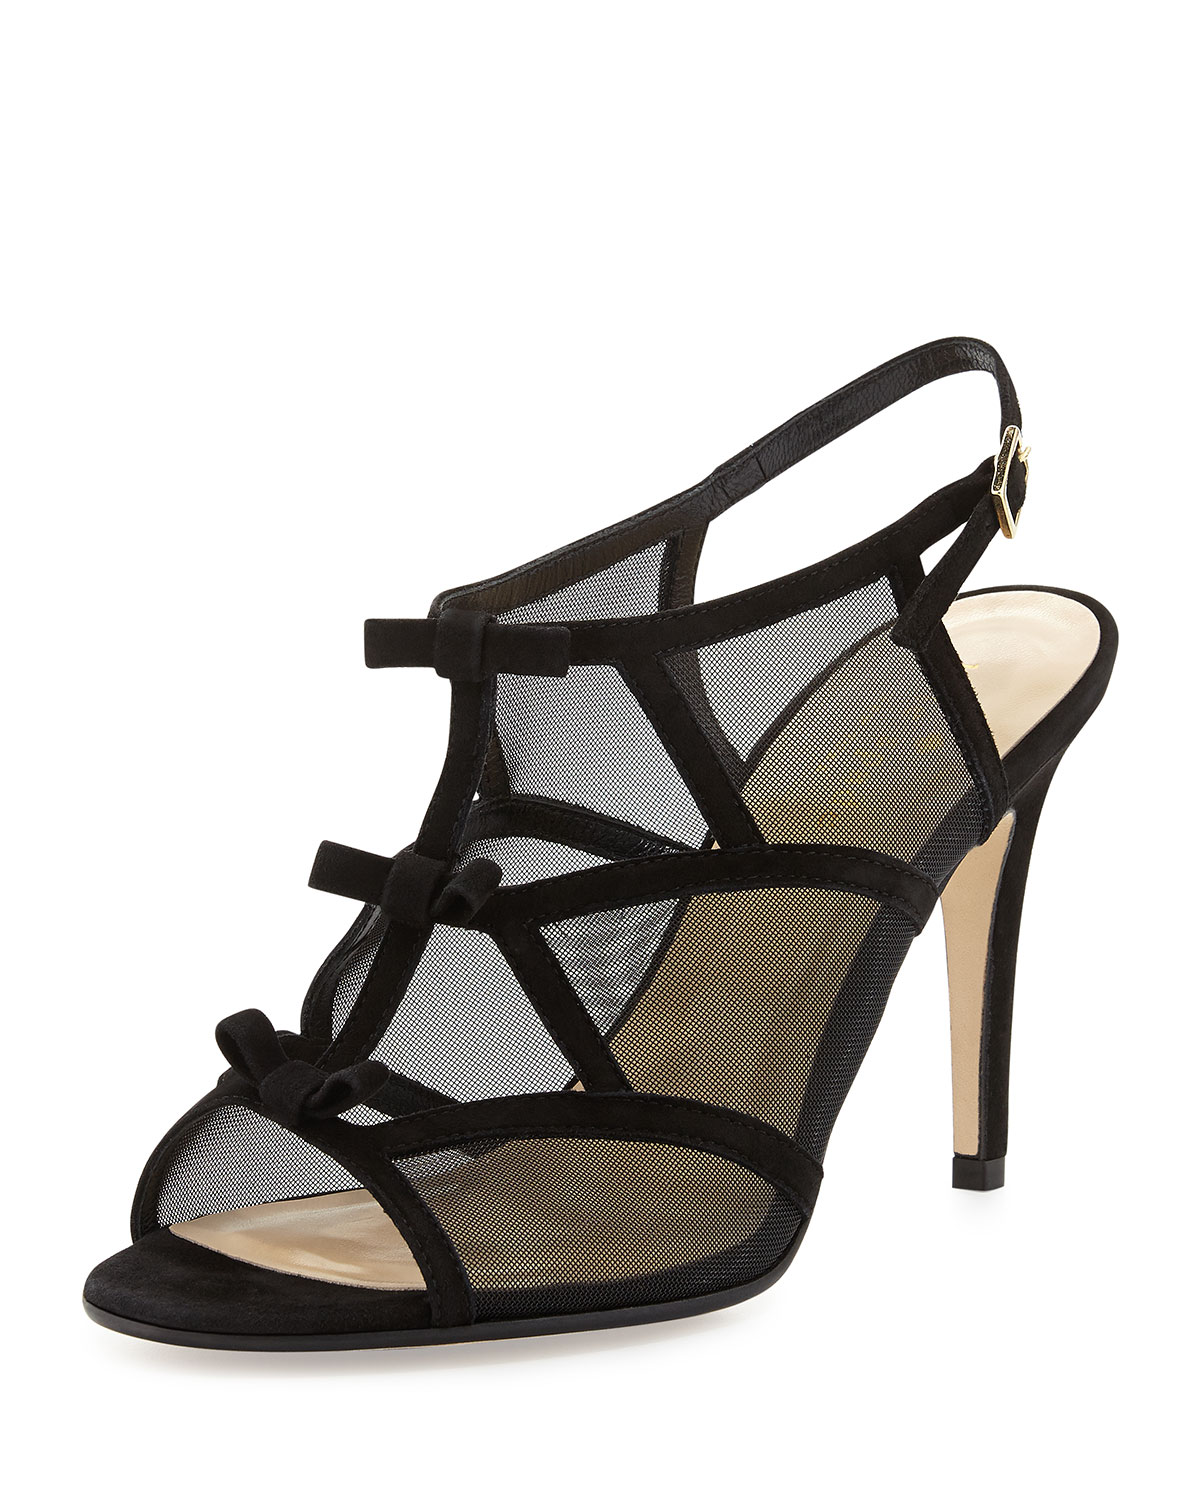 idette suede & mesh bow sandal, black   kate spade new york   Black (37.0B/7.0B)